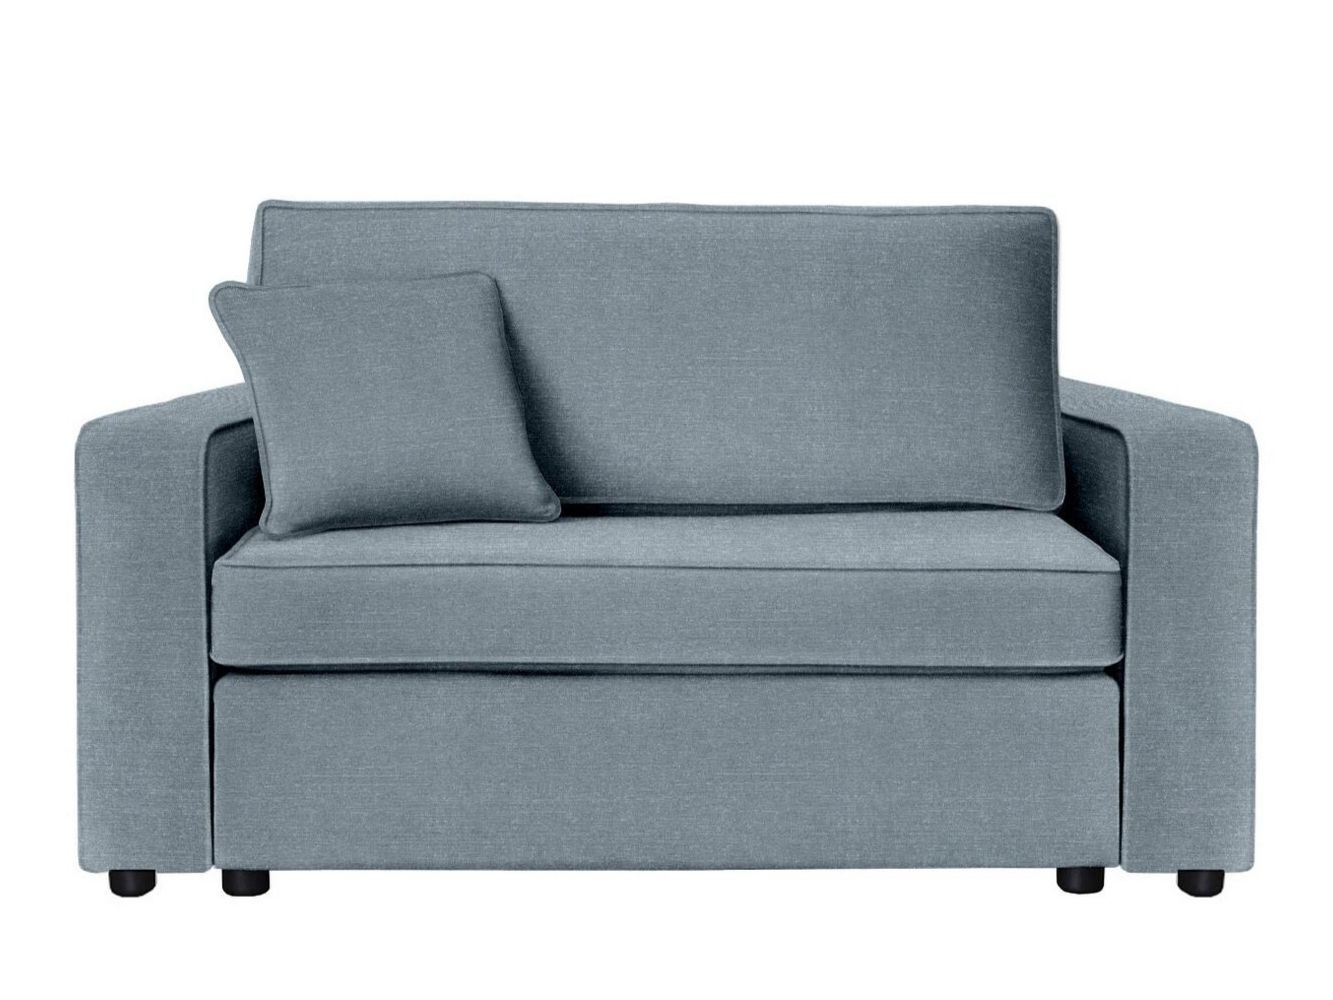 This is how I look in Washed Cotton Chambray (Discontinued Fabric) with reflex foam seat cushions